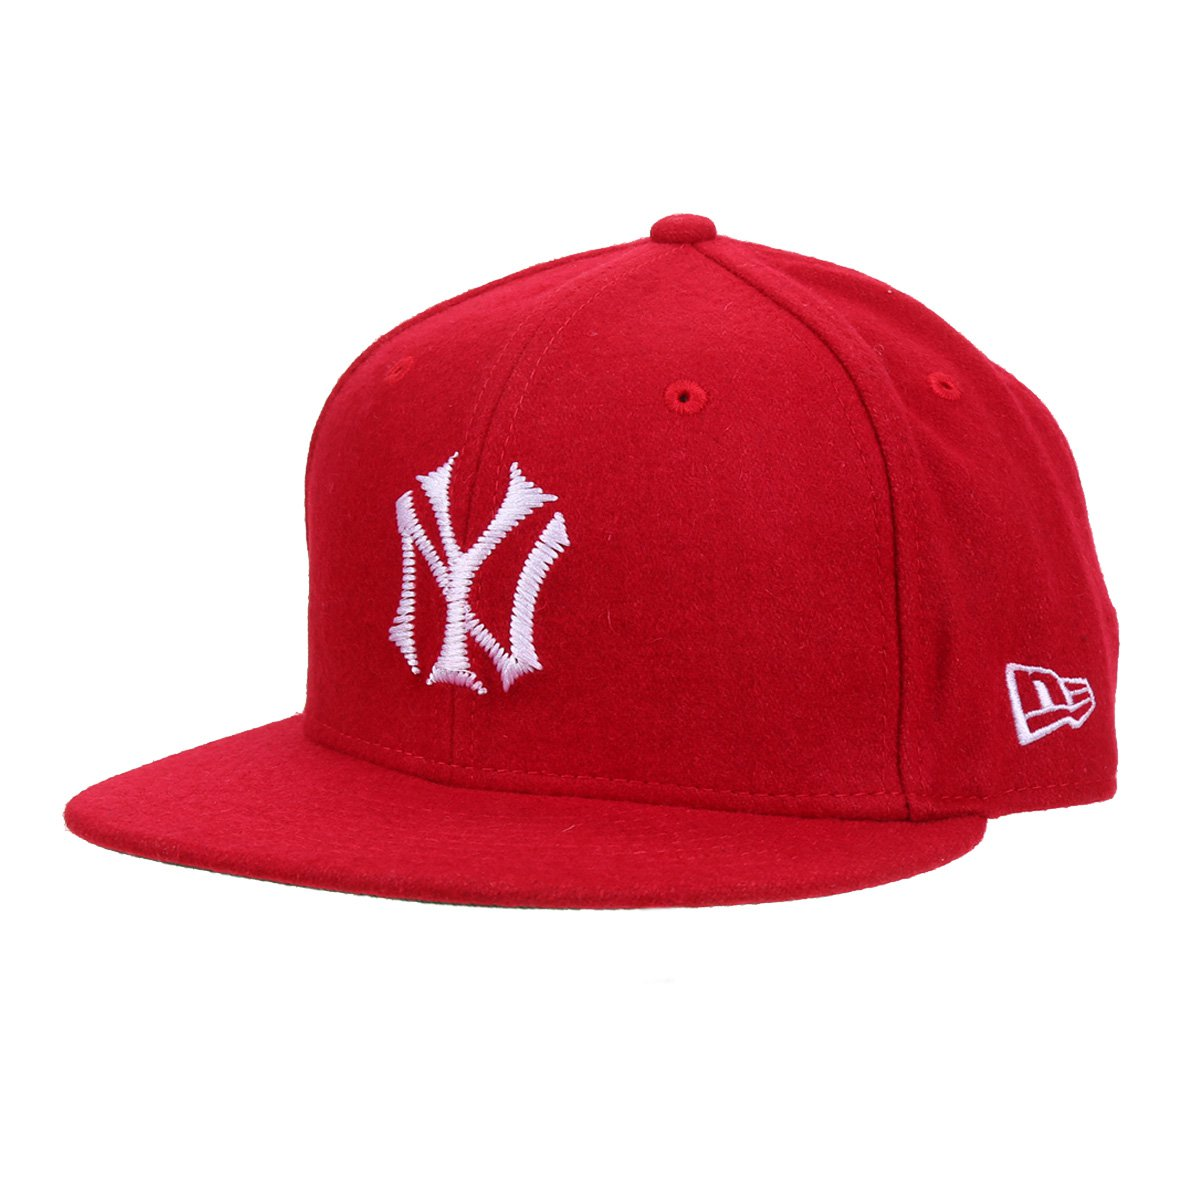 Boné New Era MLB New York Yankees Reborn 5950 Team Aba Reta